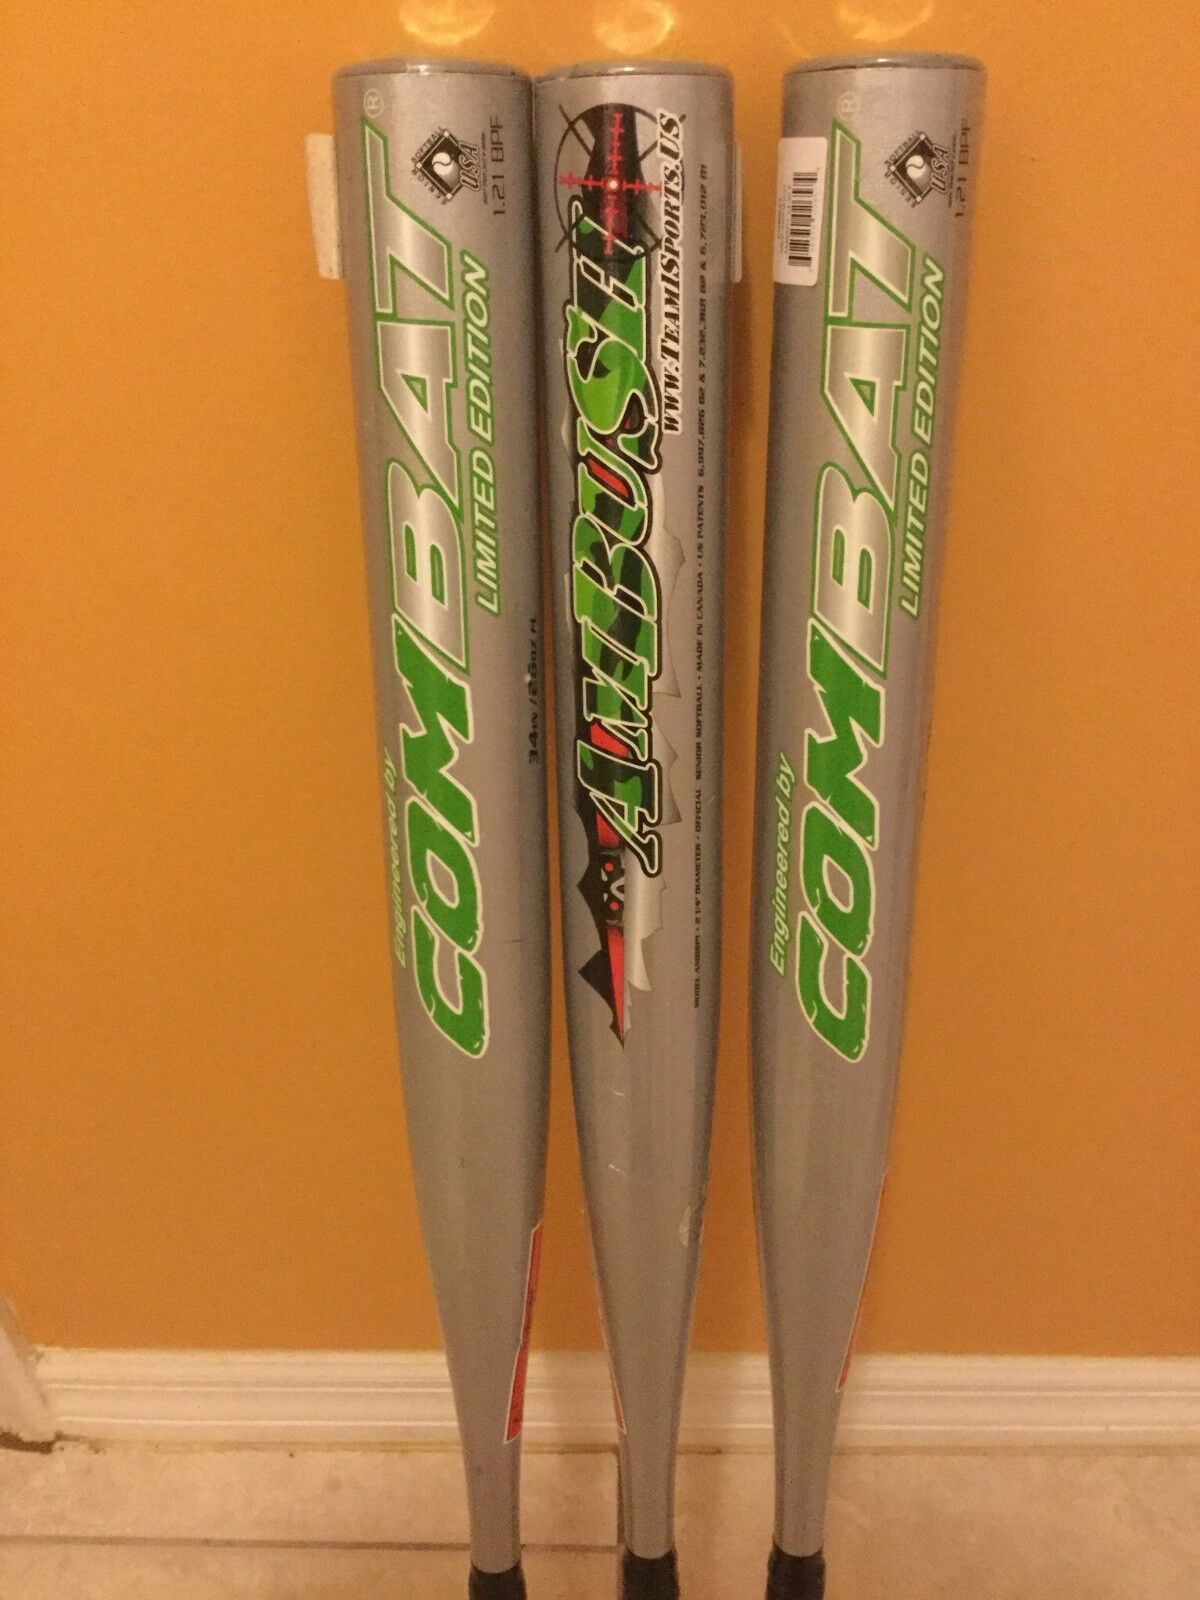 New Combat Ambush Limited Limited Limited Edition Senior bat  Hurry for closeout pricing 70bc4f